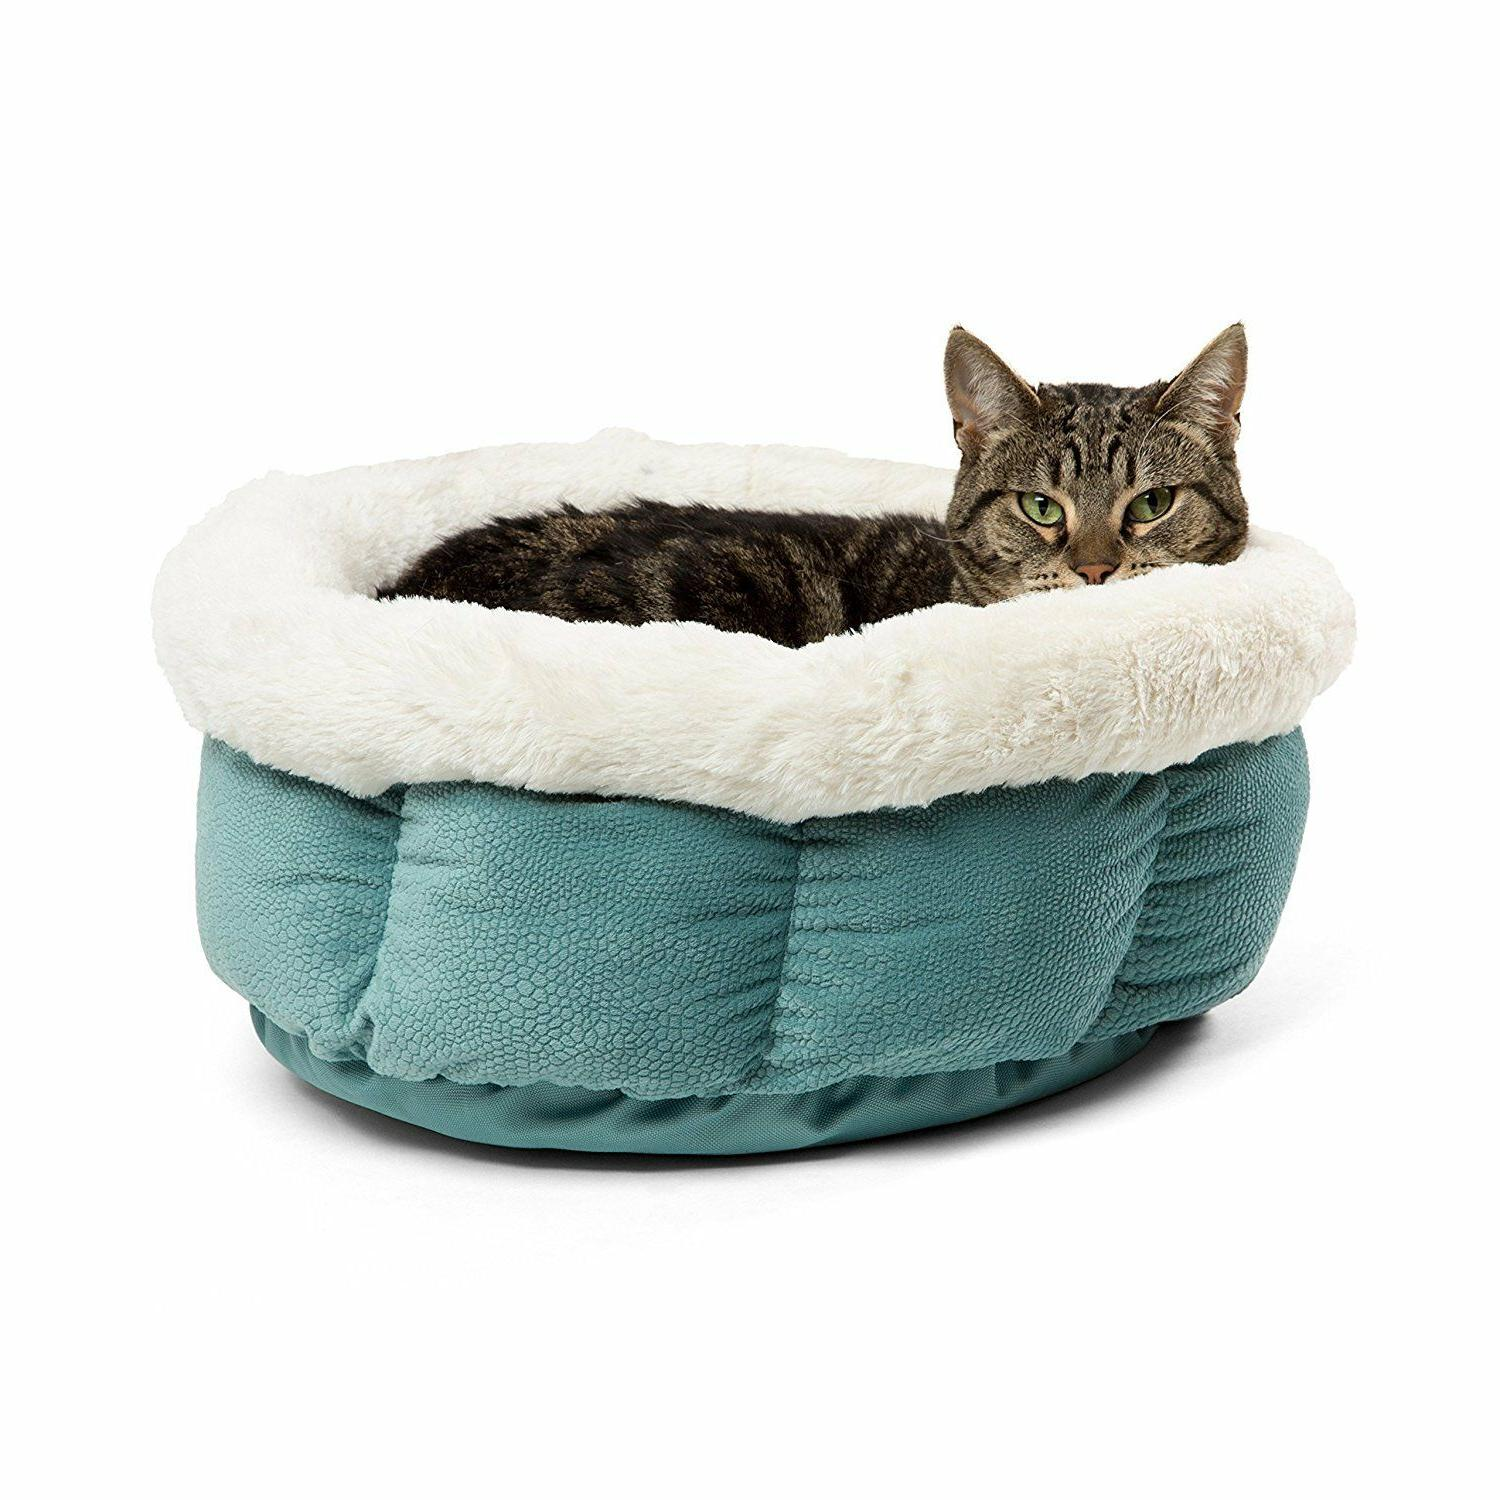 cuddle cup pet bed